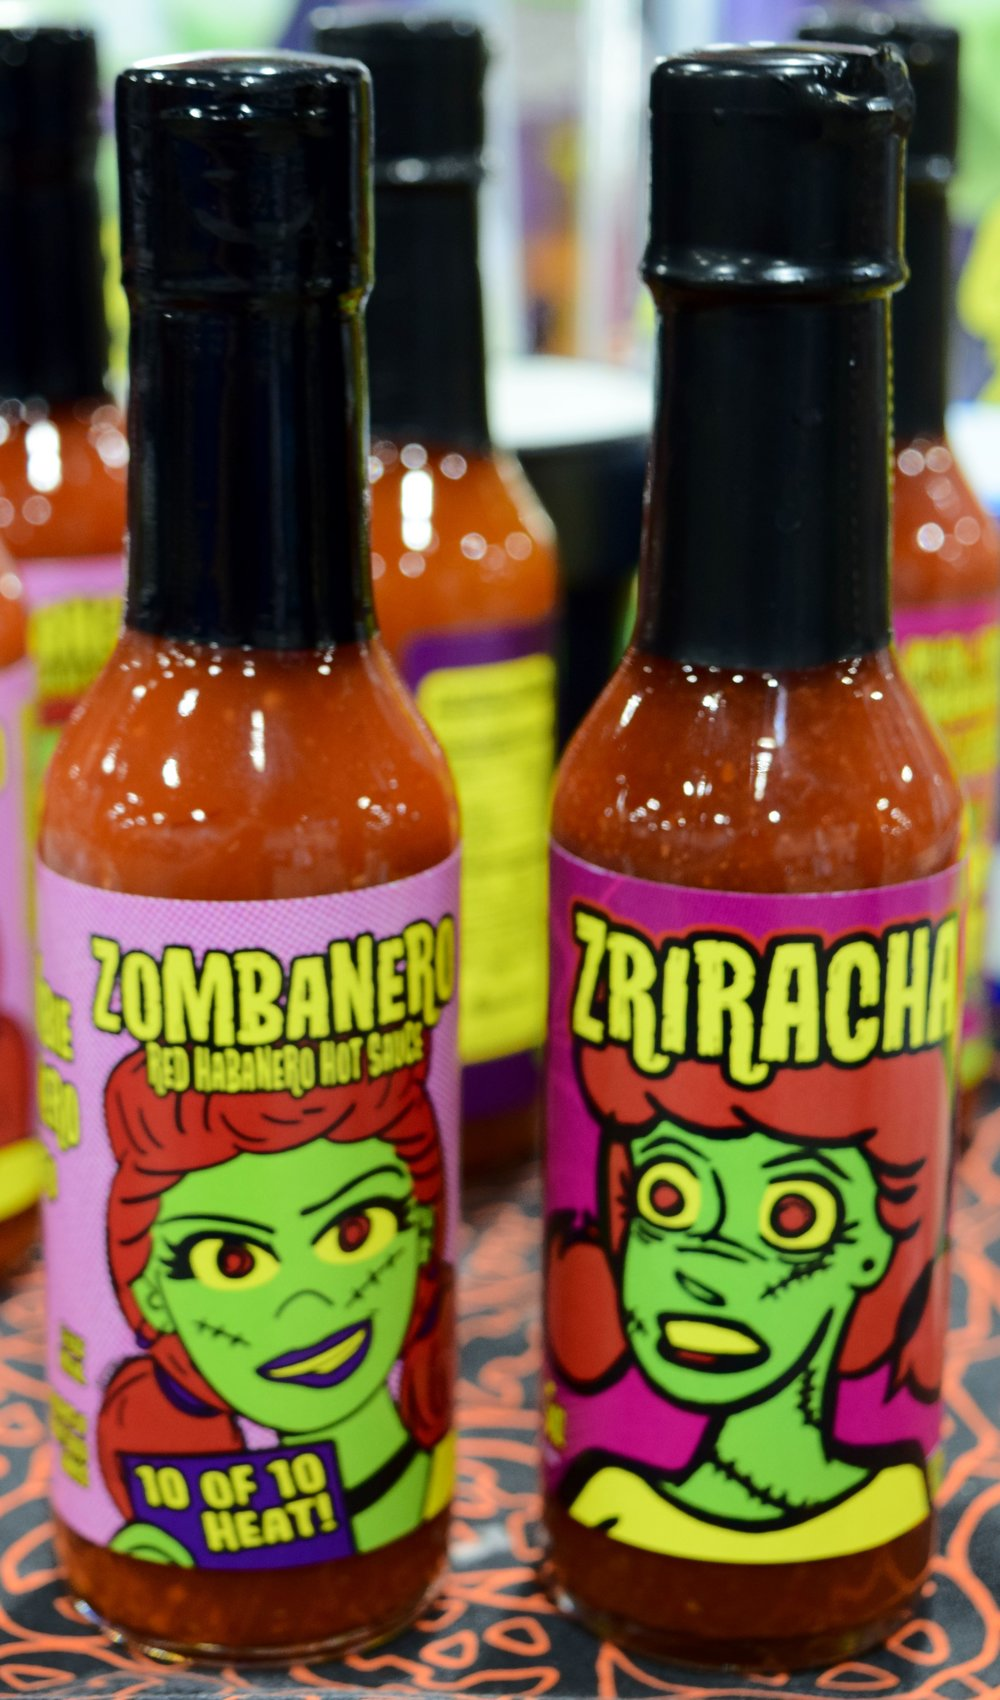 My Gal the Zombie hot sauce at Denver Comic Con 2017.